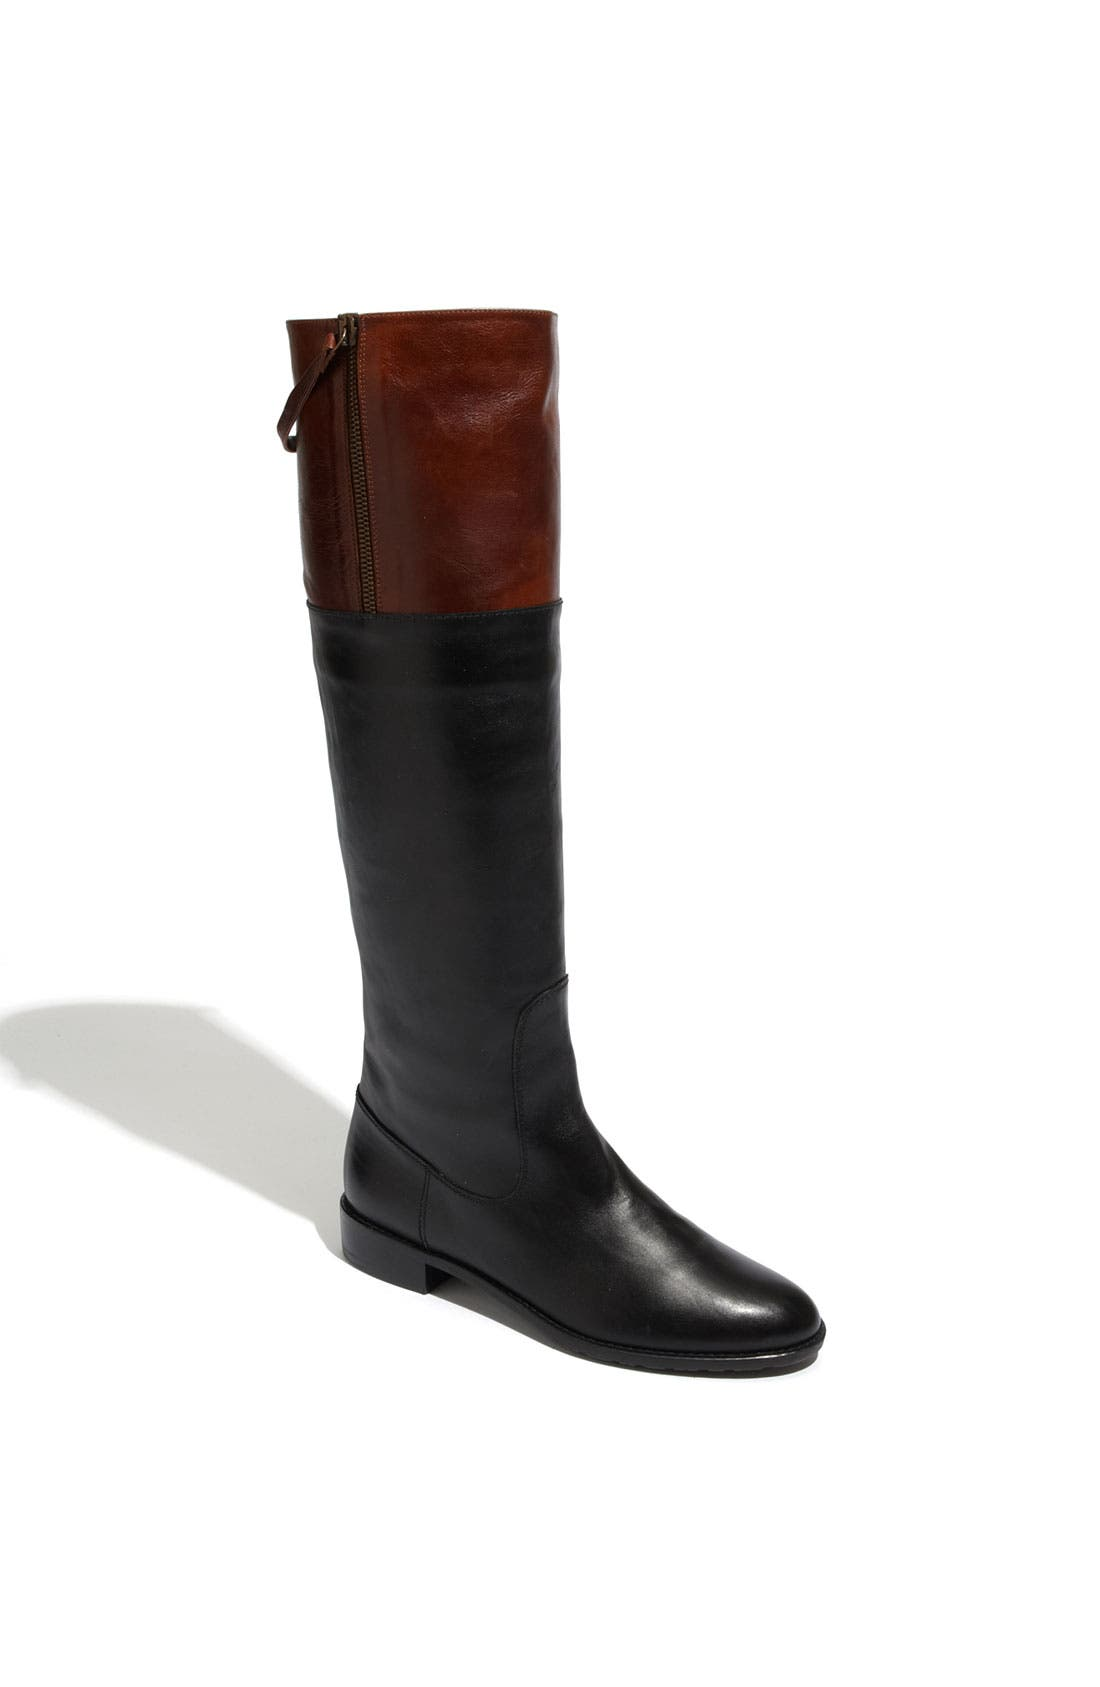 Alternate Image 1 Selected - Stuart Weitzman 'Upbeat' Boot